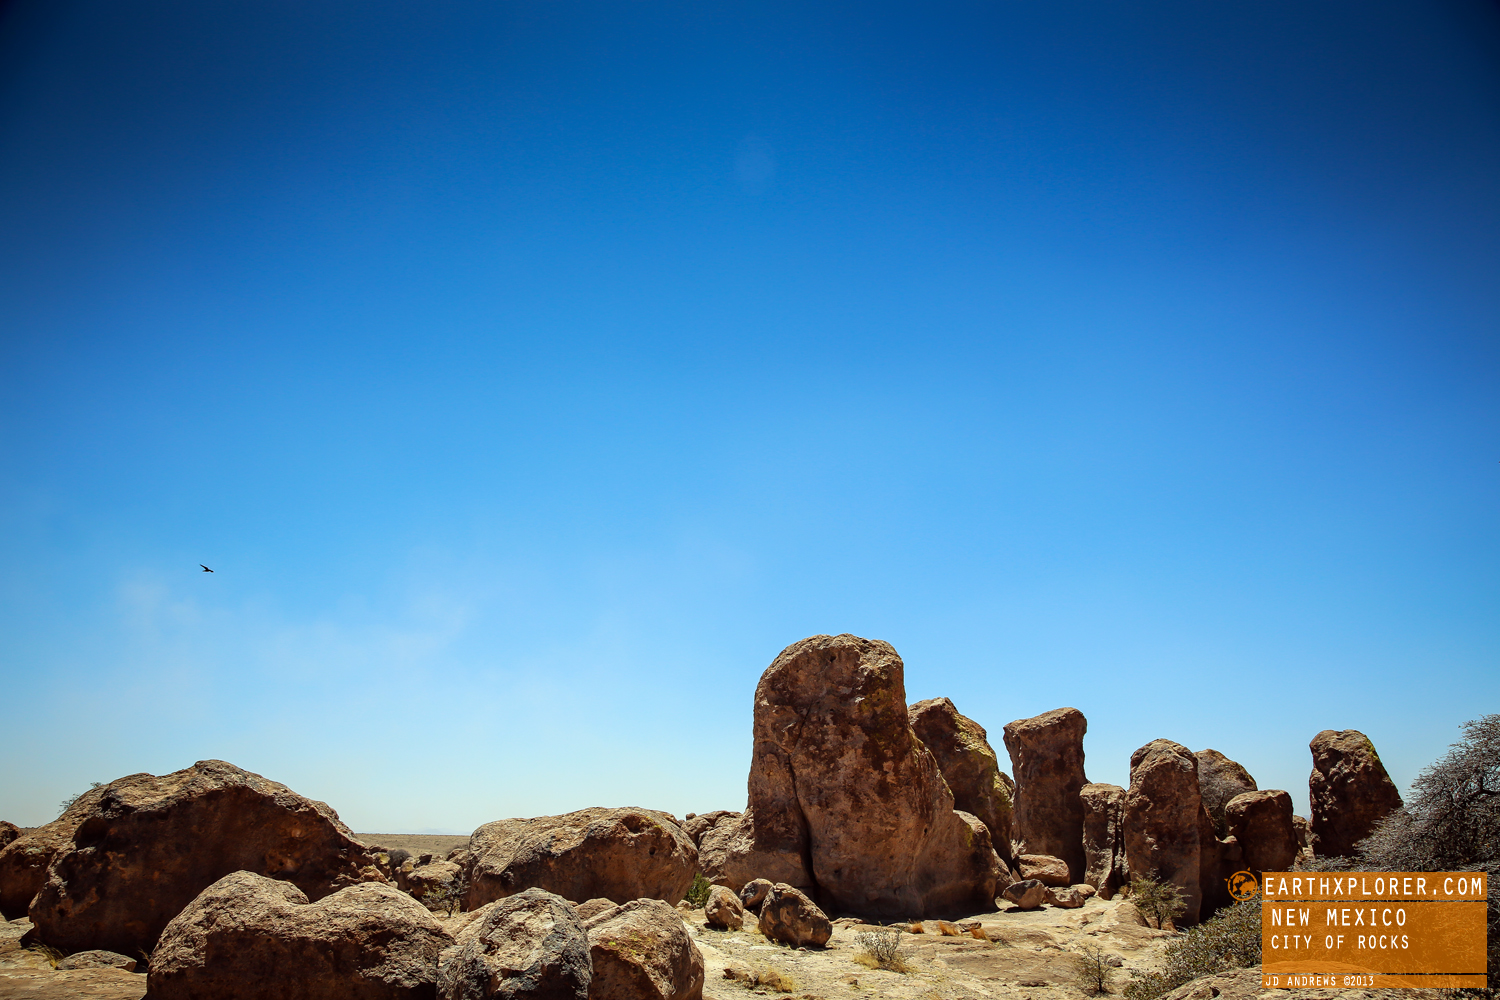 City of Rocks State Park is a state park of New Mexico. Looking like something right out of the Flintstones, it has large sculptured rock formations in many shapes & sizes rising in the air as high as 40 feet.